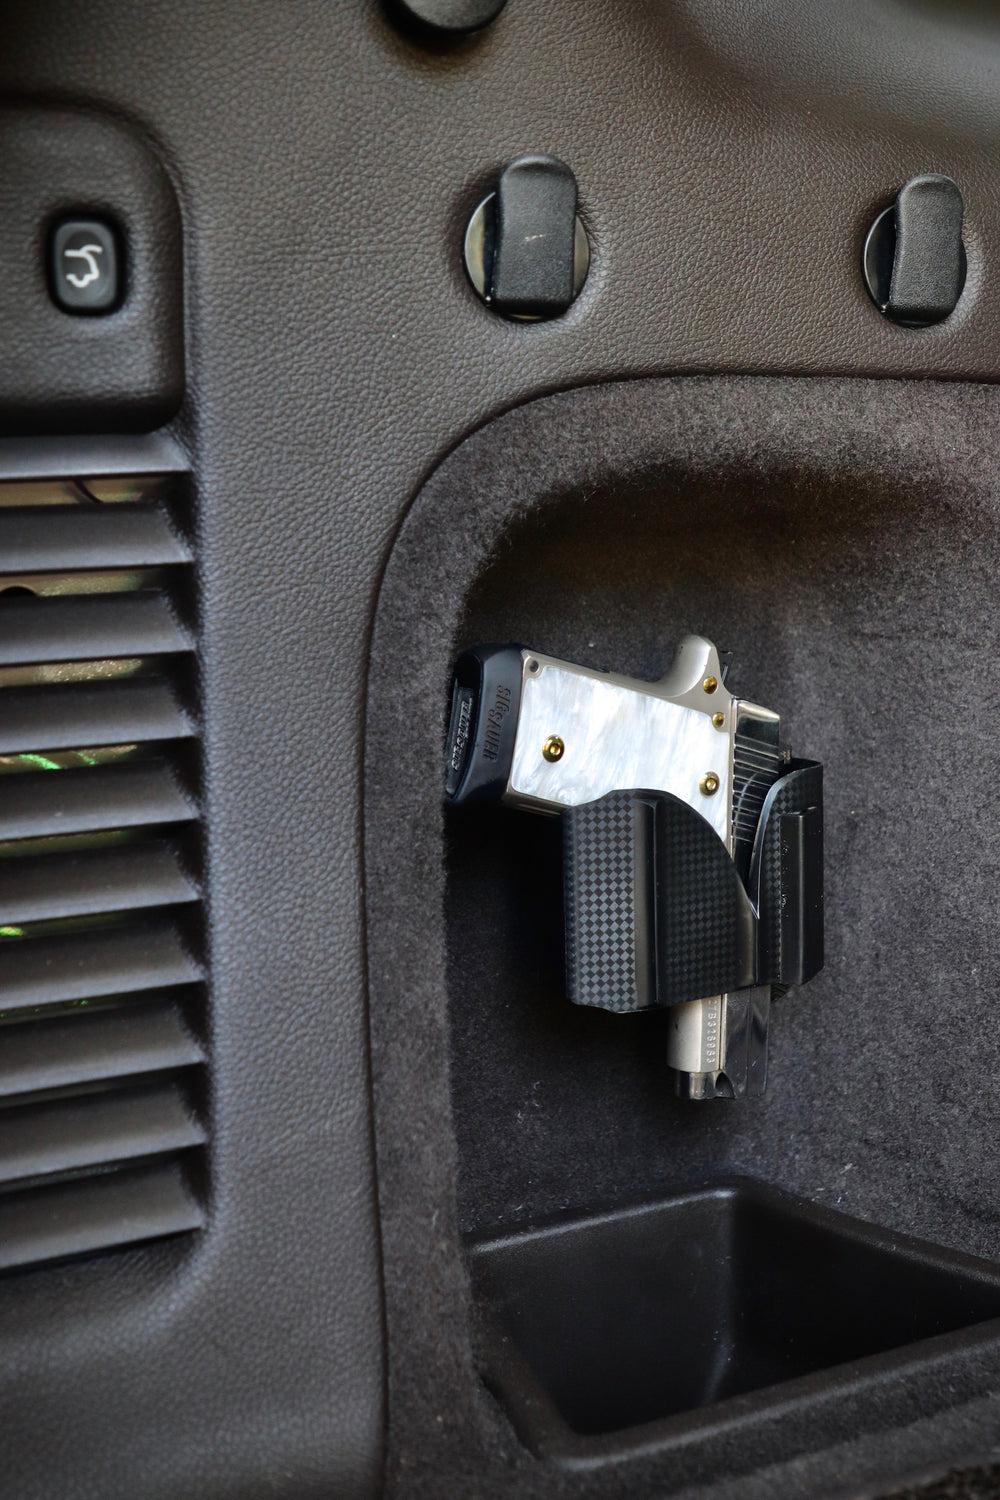 CoJo universal gun holster mounted in the side panel of a vehicle